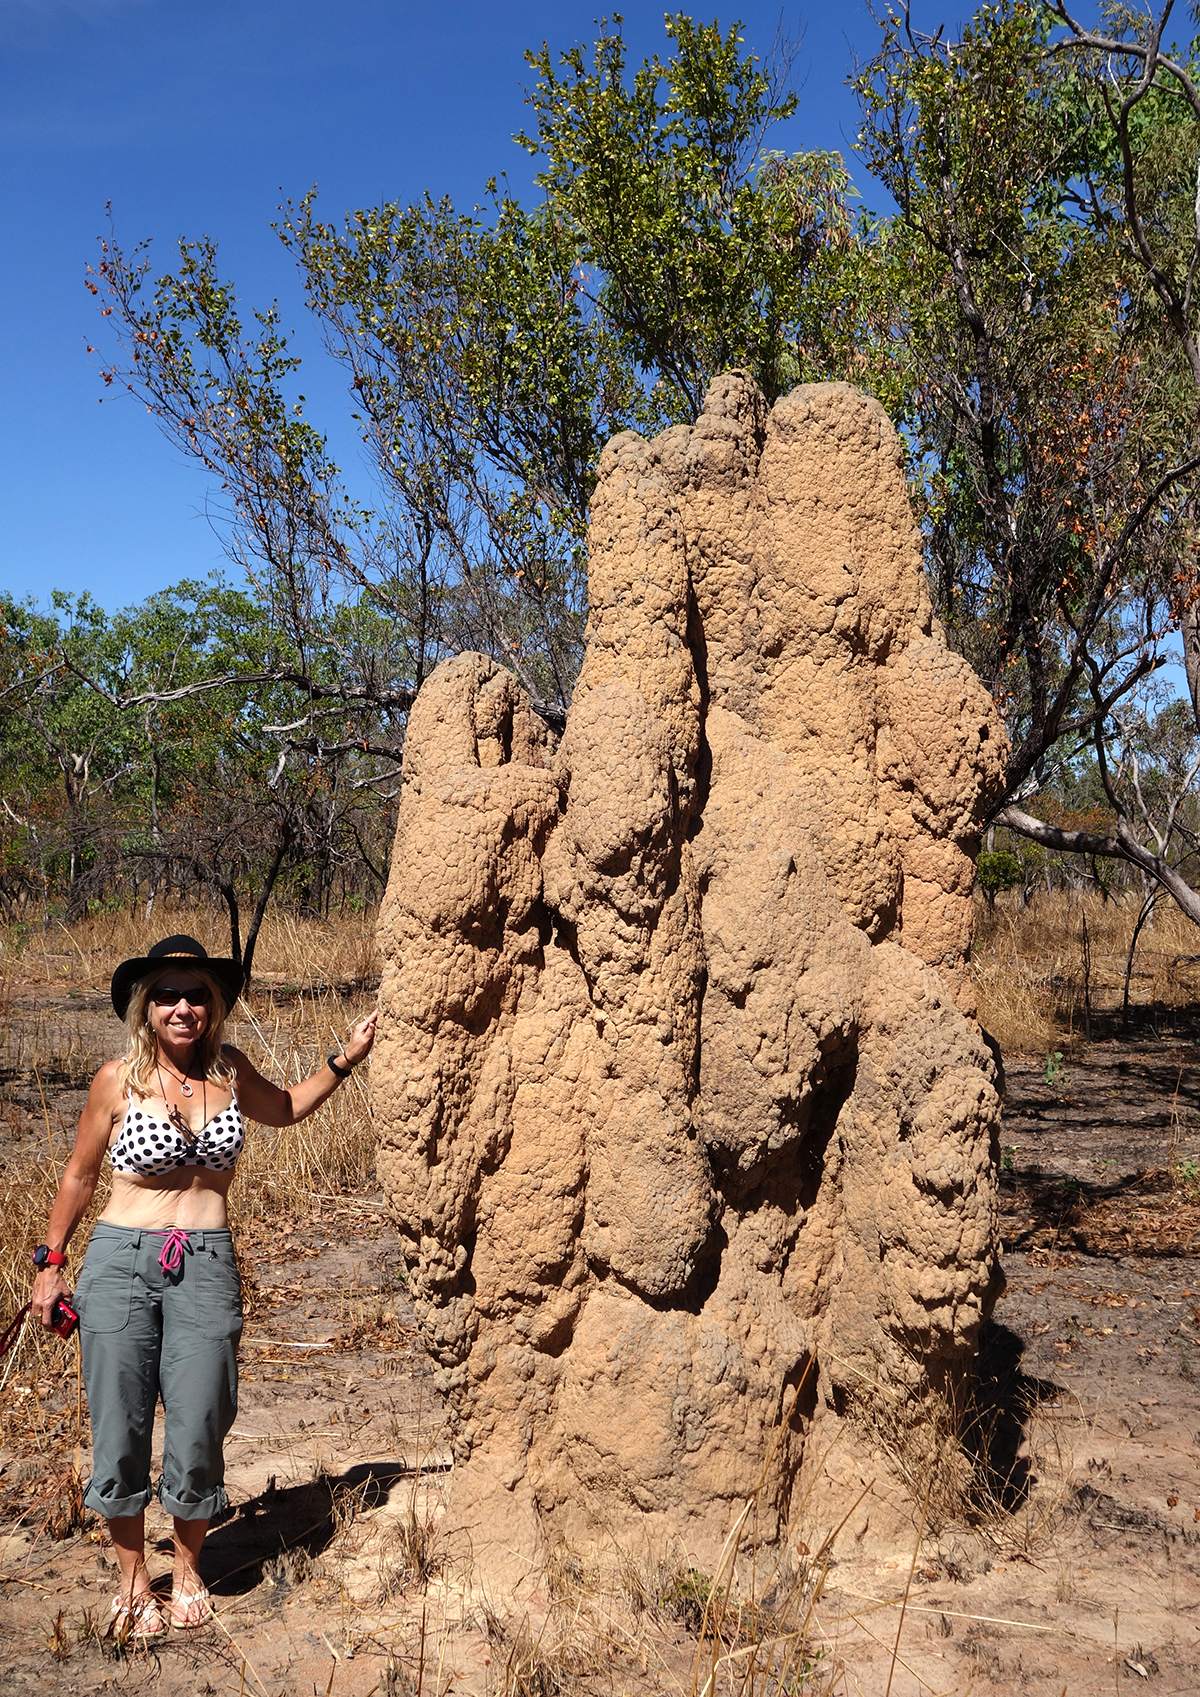 One of the larger termites nest we saw coming into Kakadu